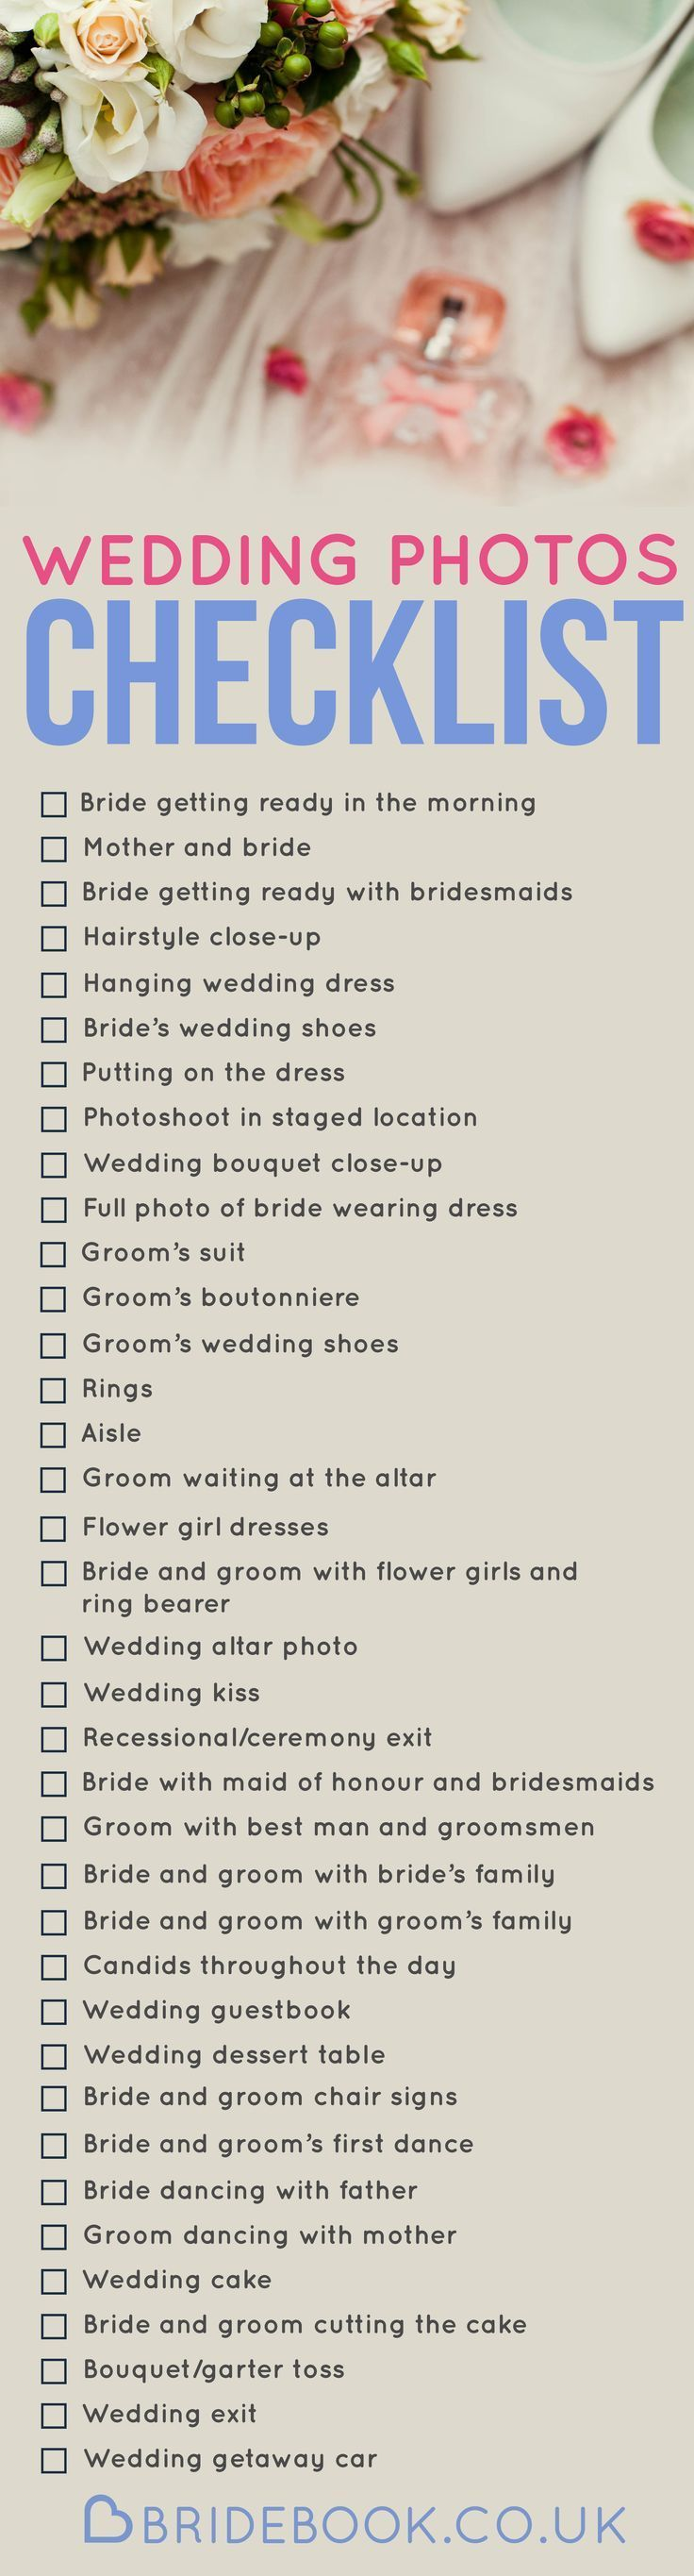 Sign up up to Bridebook, the free online wedding planner. With tools such as checklist, budget, guestlist and supplier search, you'll have everything you need to plan the wedding of your dreams!